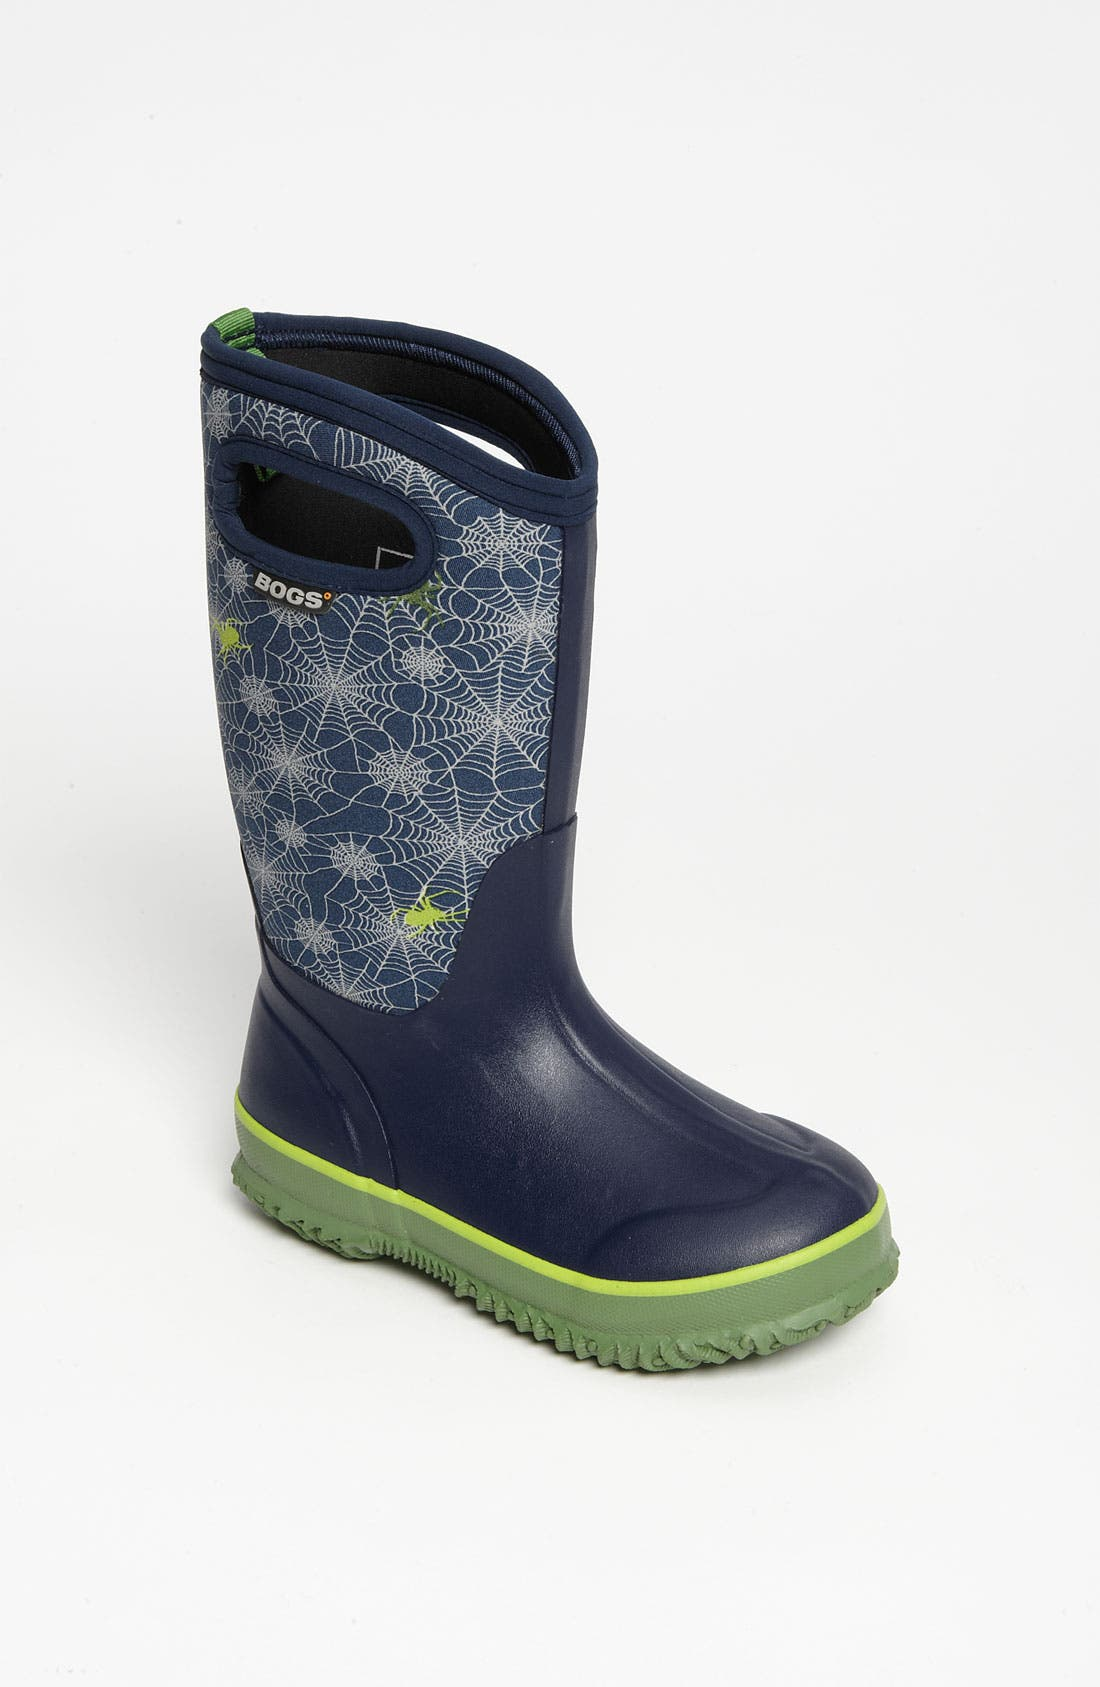 Main Image - Bogs 'Classic High - Spider' Waterproof Boot (Toddler, Little Kid & Big Kid)